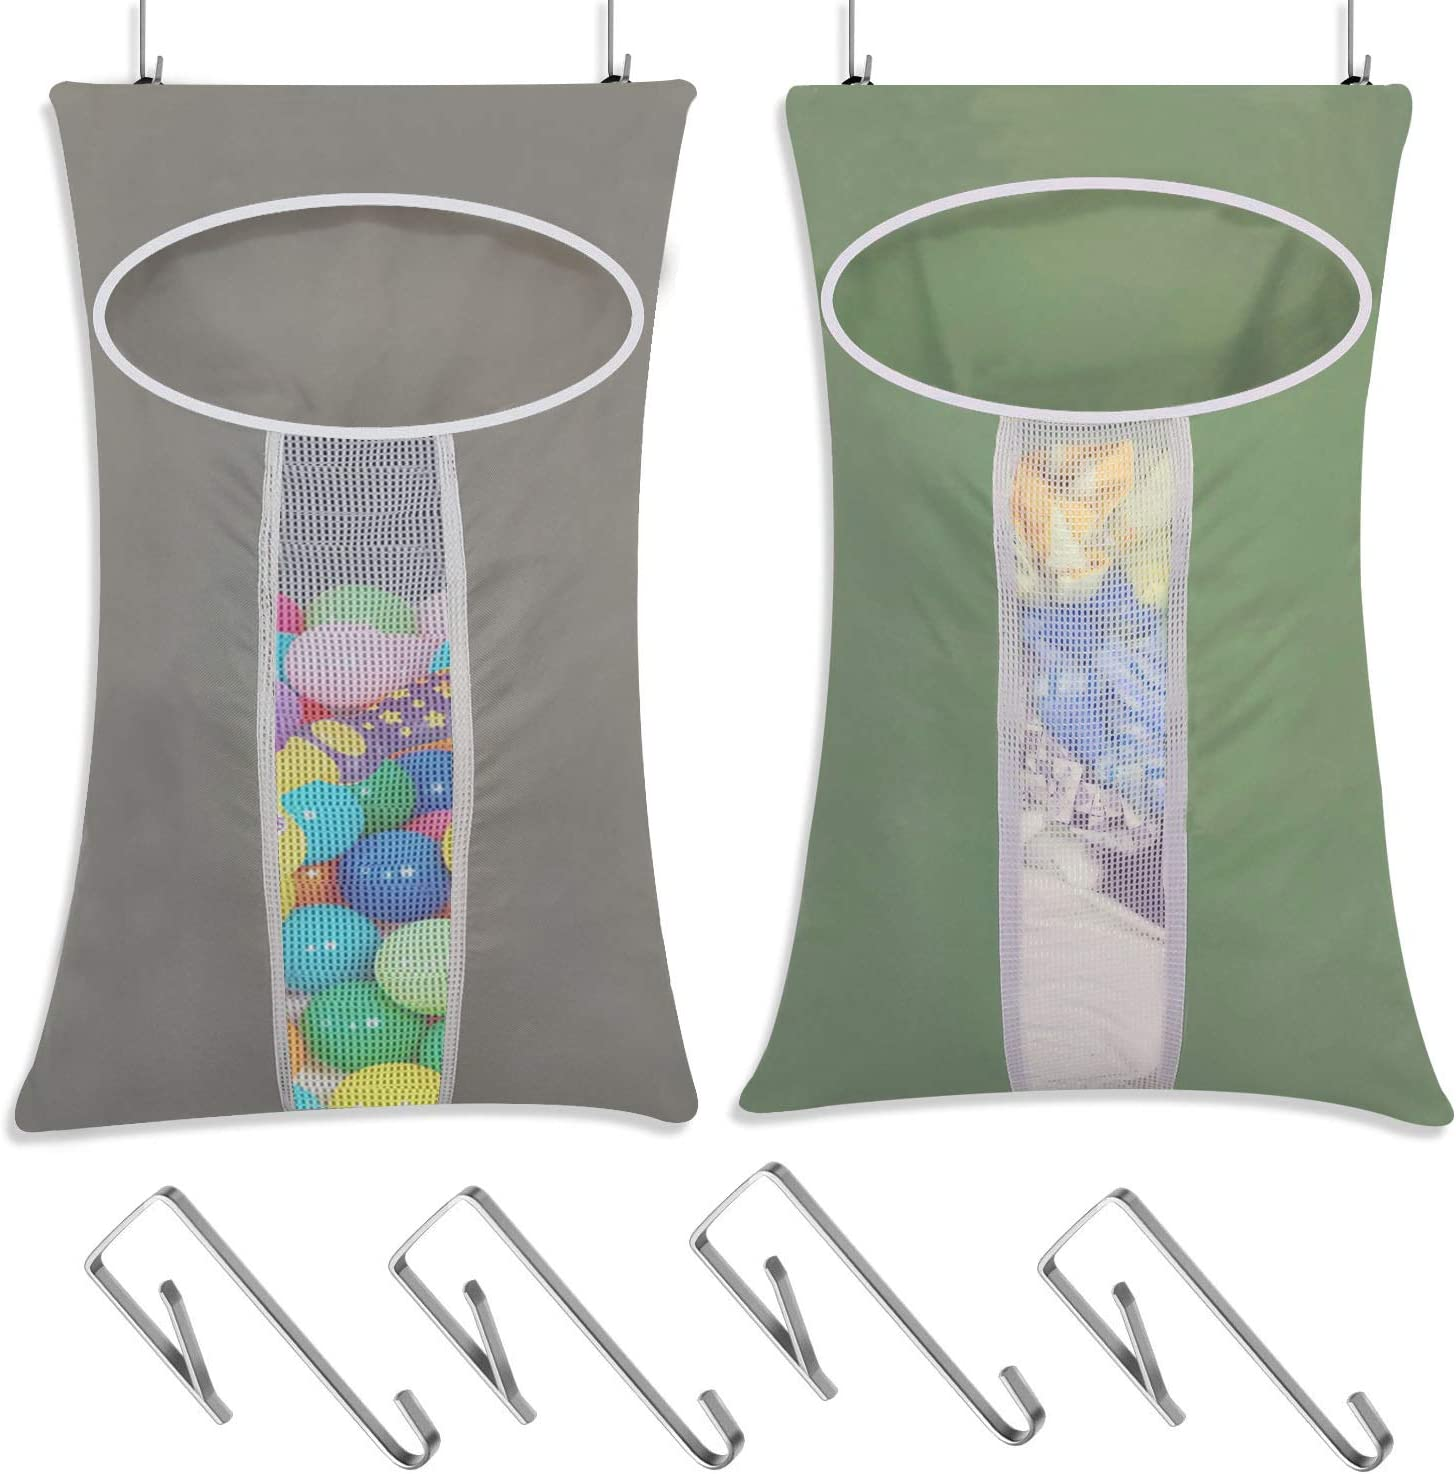 LAMTWEK 2 Pack Door-Hanging Laundry Hamper Bag, Rip-Stop Toy Storage Bag, Foldable & Space Saving Corner Laundry Organiser with 4PCS Stainless Steel Door Hooks, Machine Washable Oxford (Green+Grey)